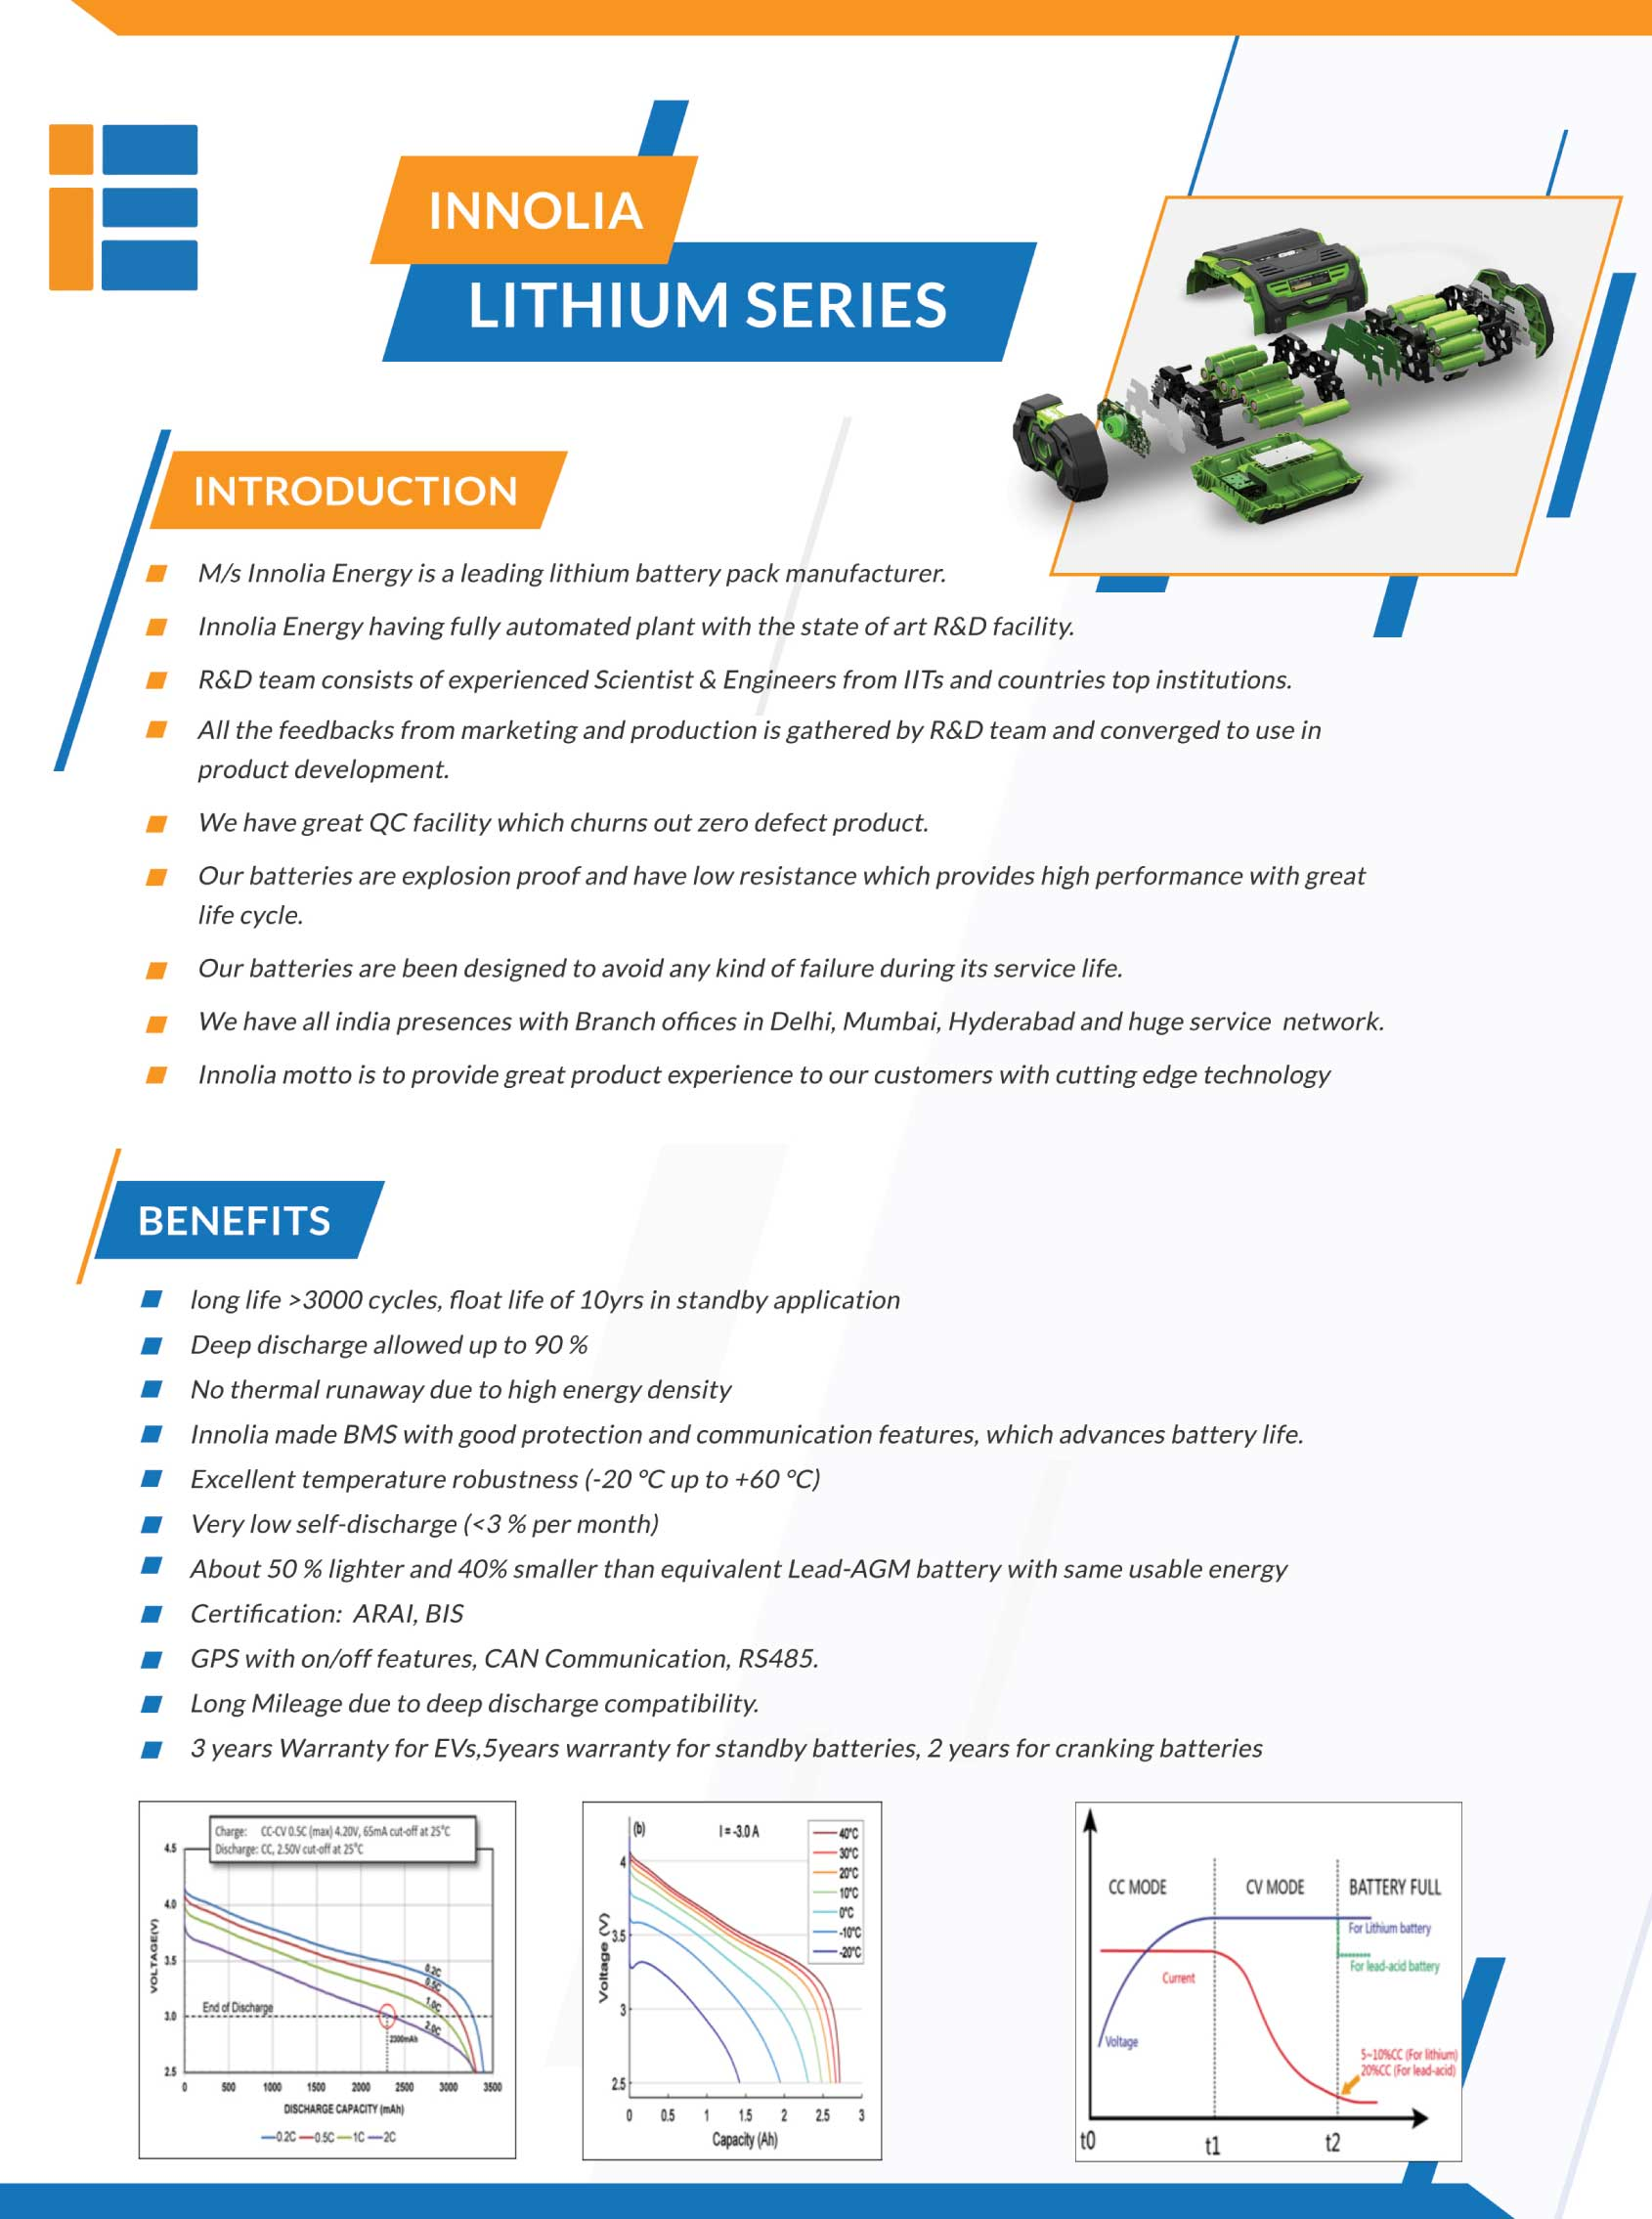 about lithium battery innolia series